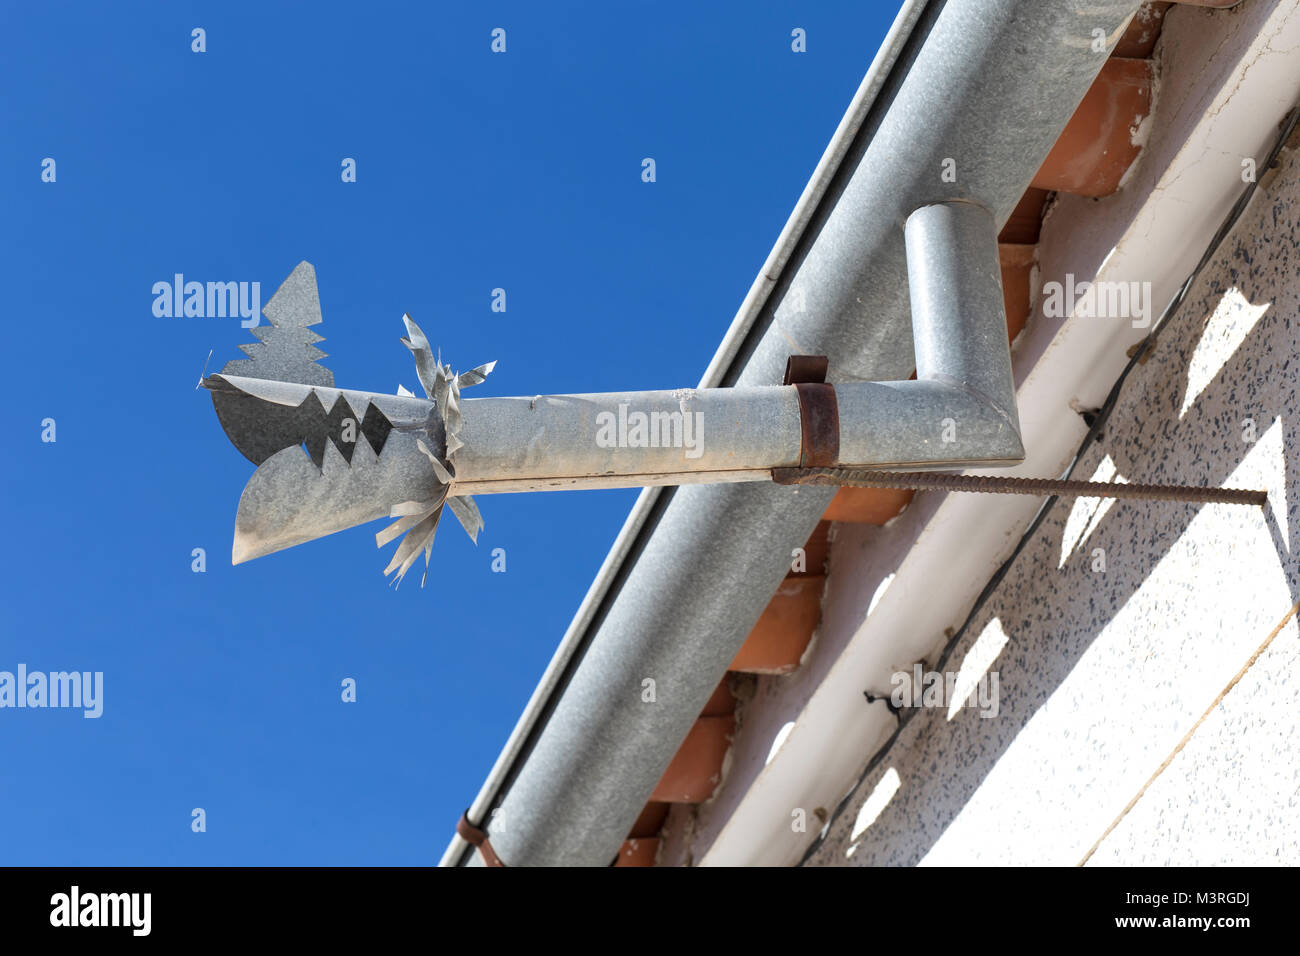 Zinc gutter drainage system dragon shaped over blue sky. Southern spain - Stock Image